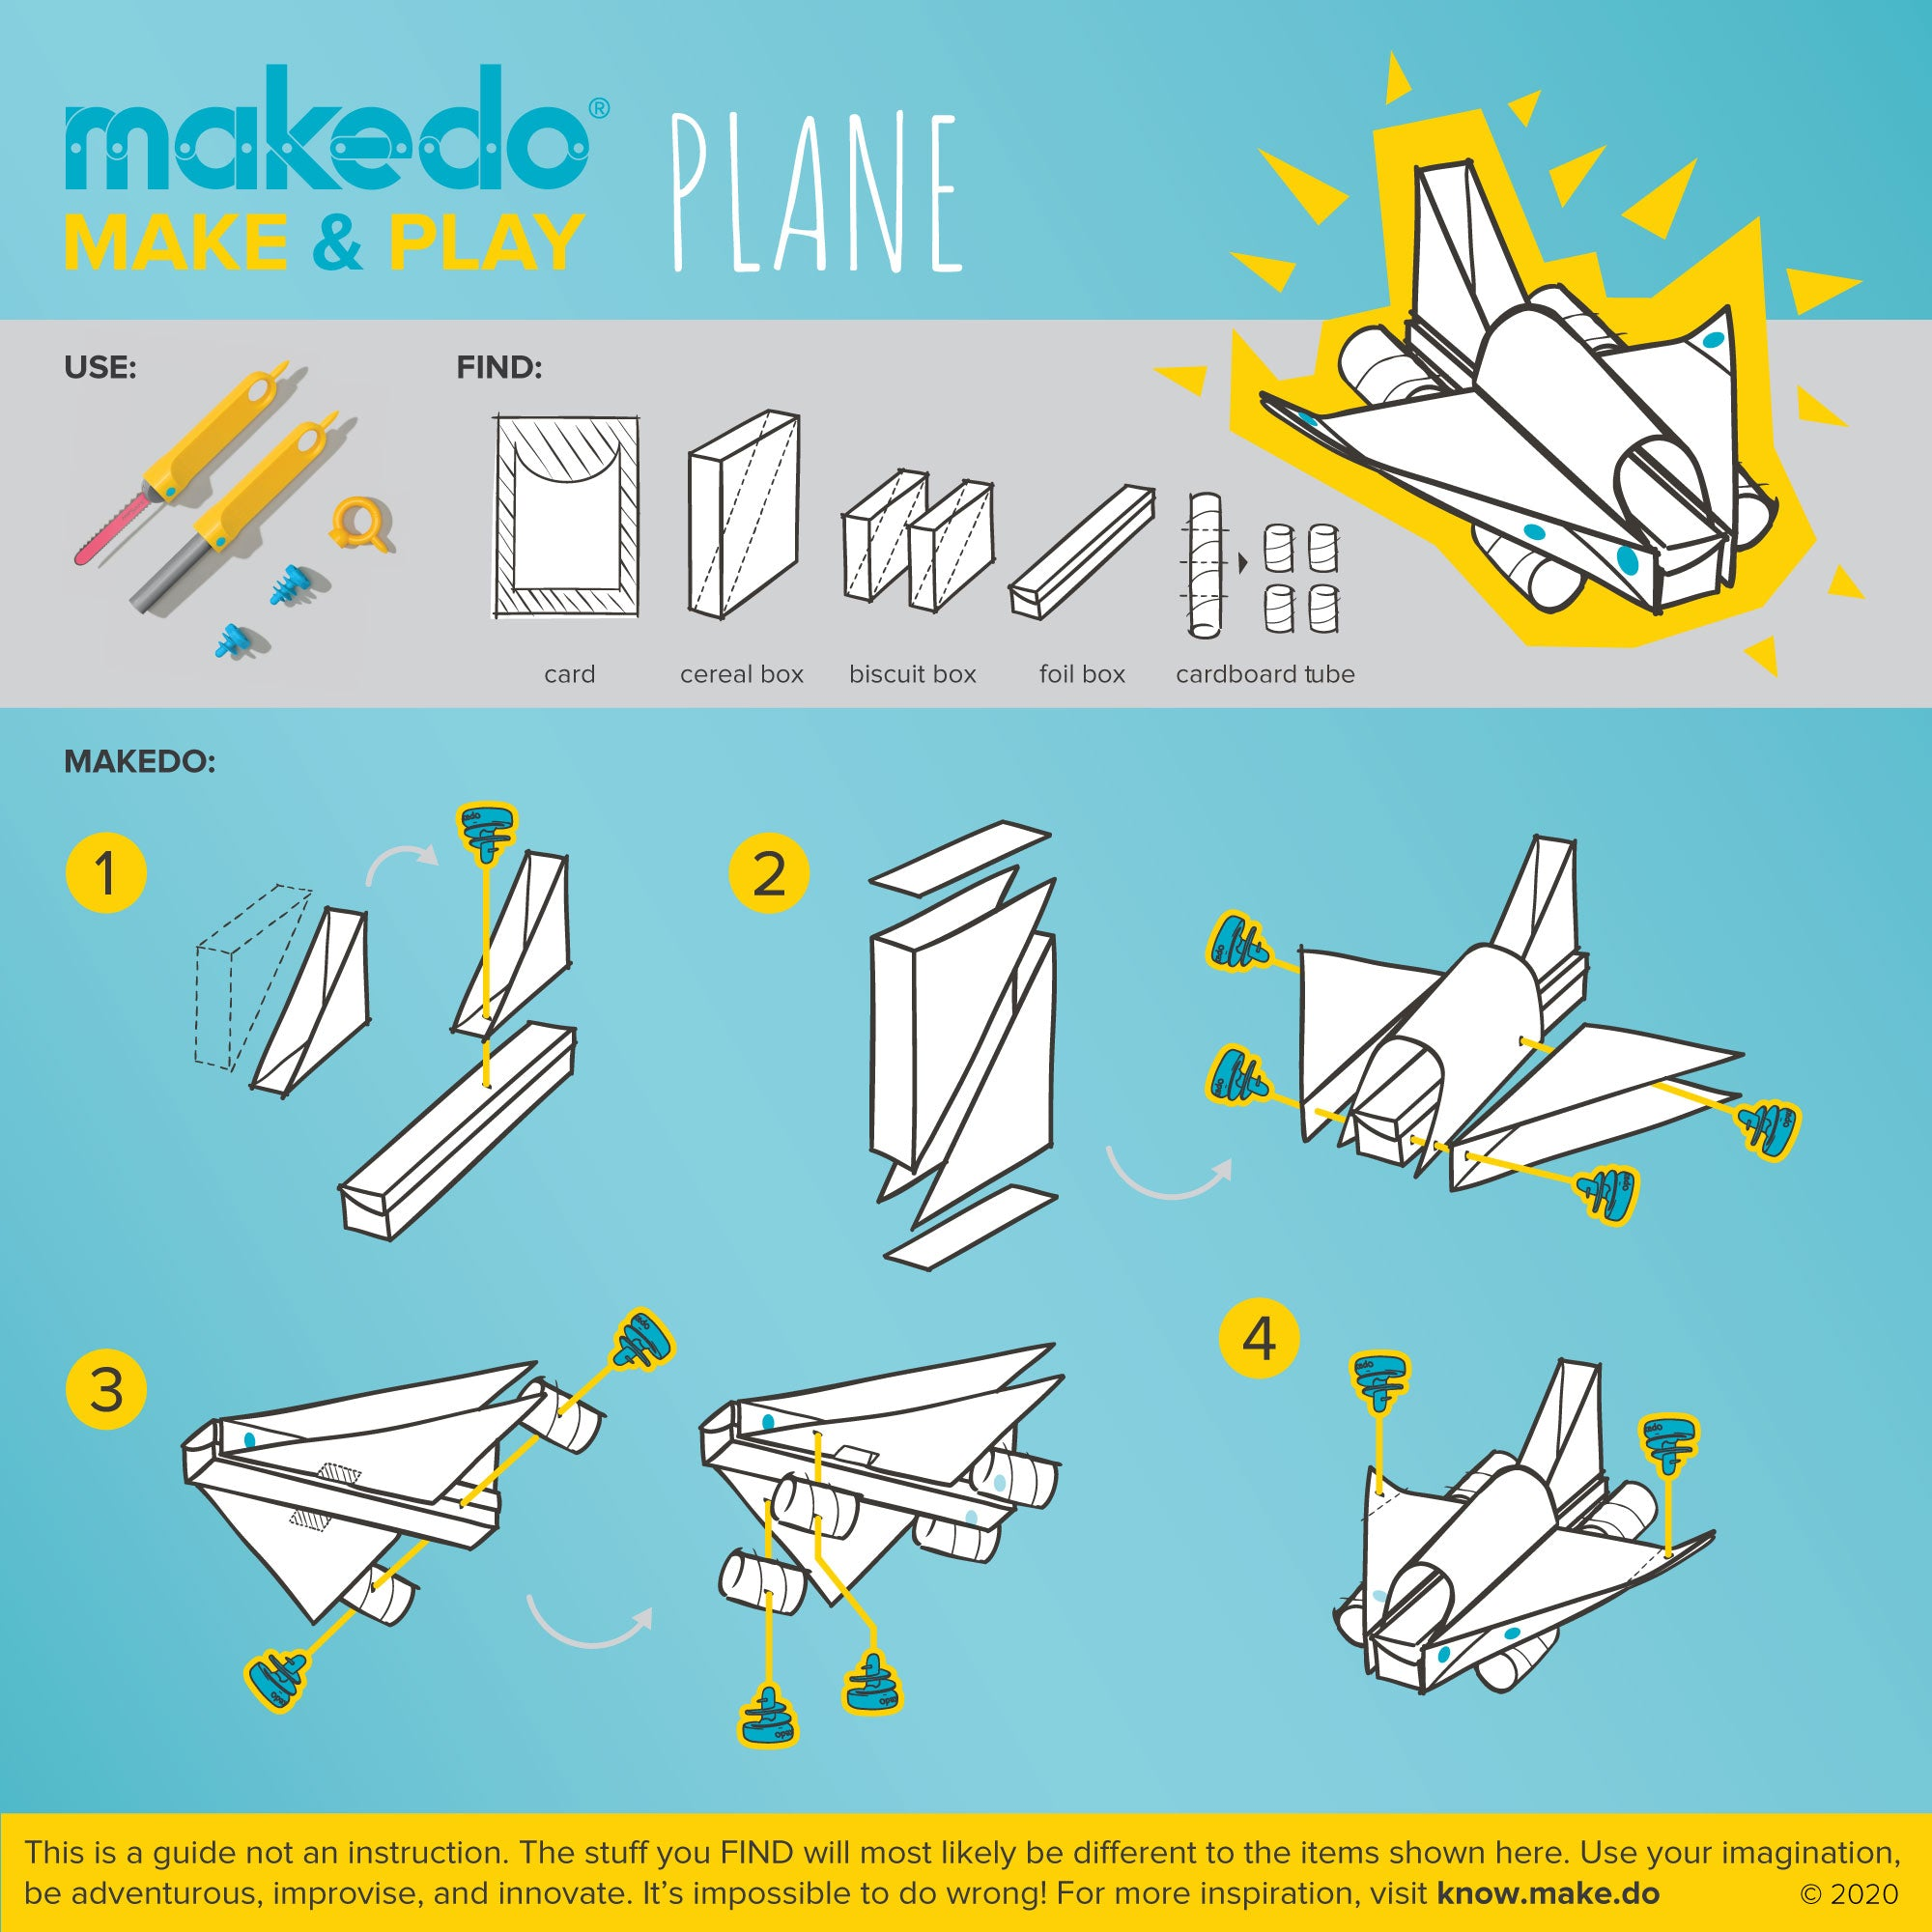 Makedo guided creation - Make & Play - Plane